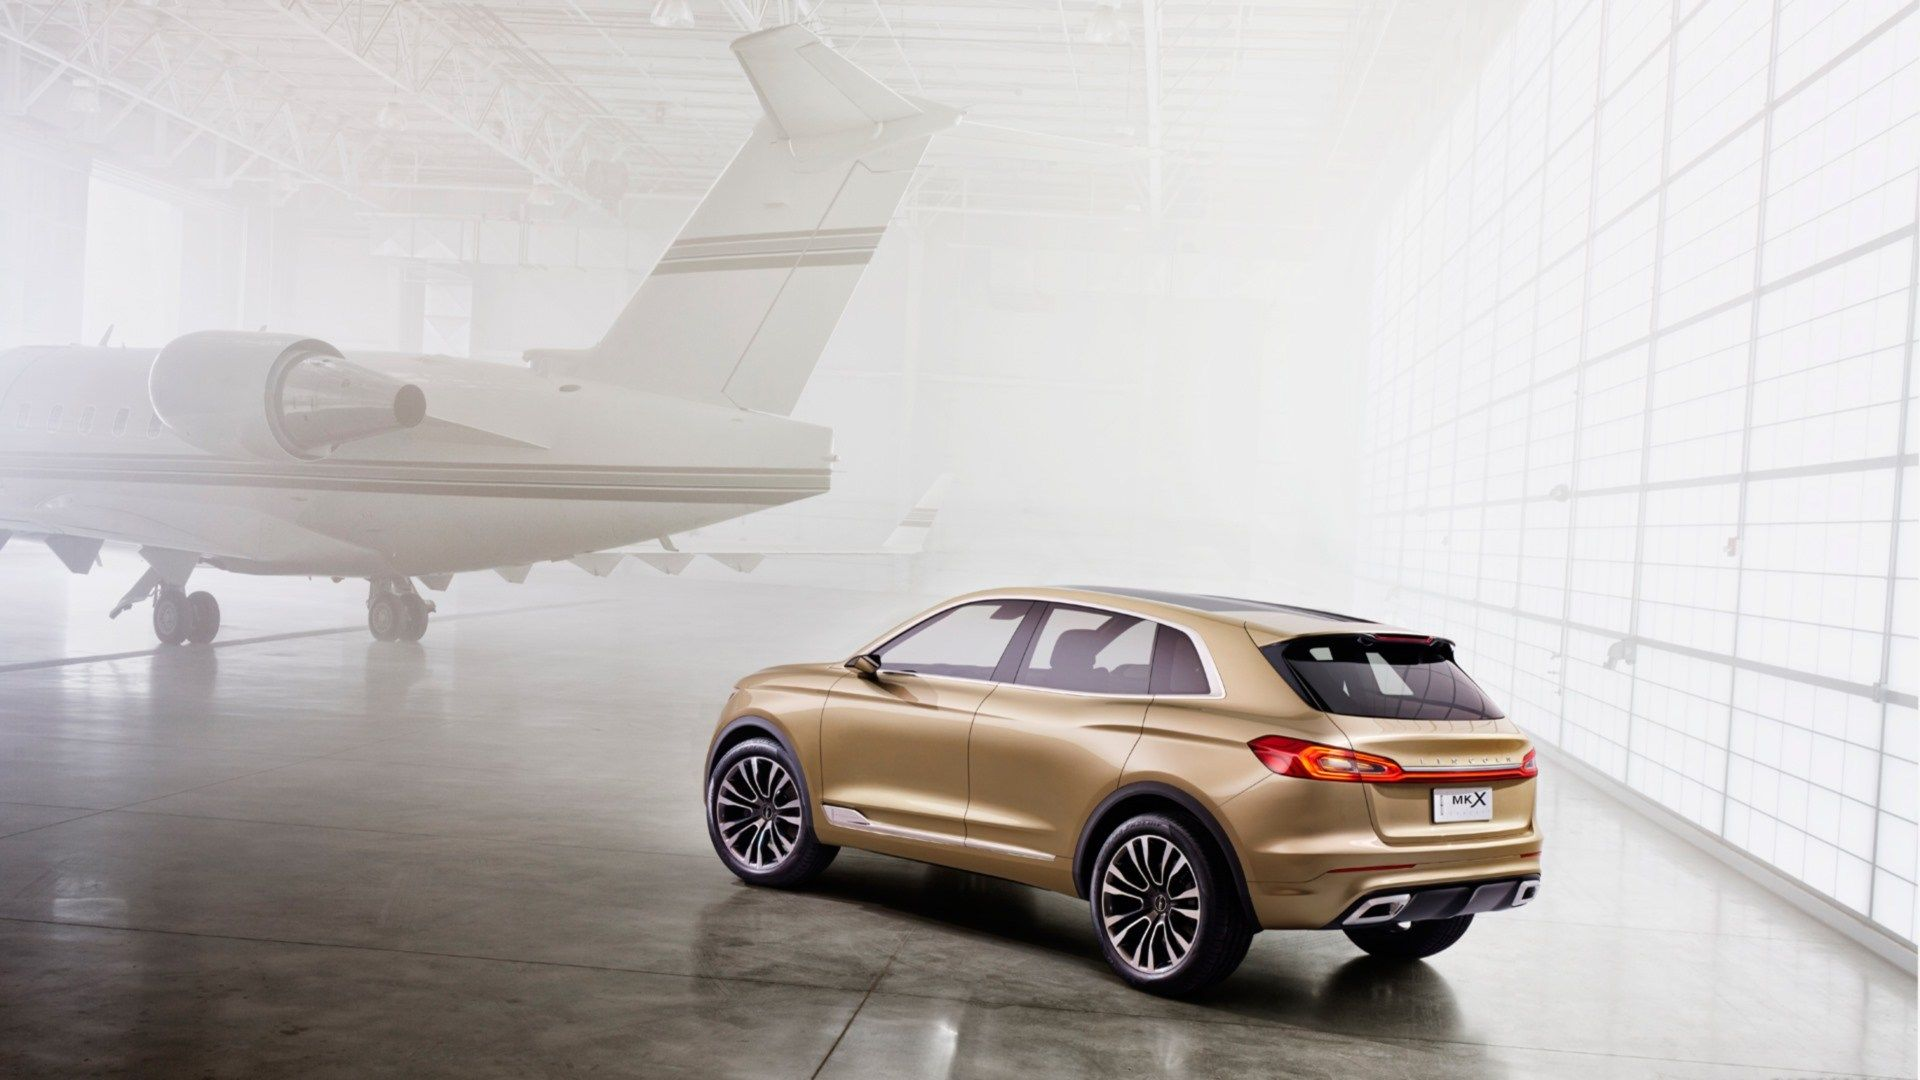 Free wallpaper and screensavers for 2014 lincoln mkc concept by manford nail 2017 03